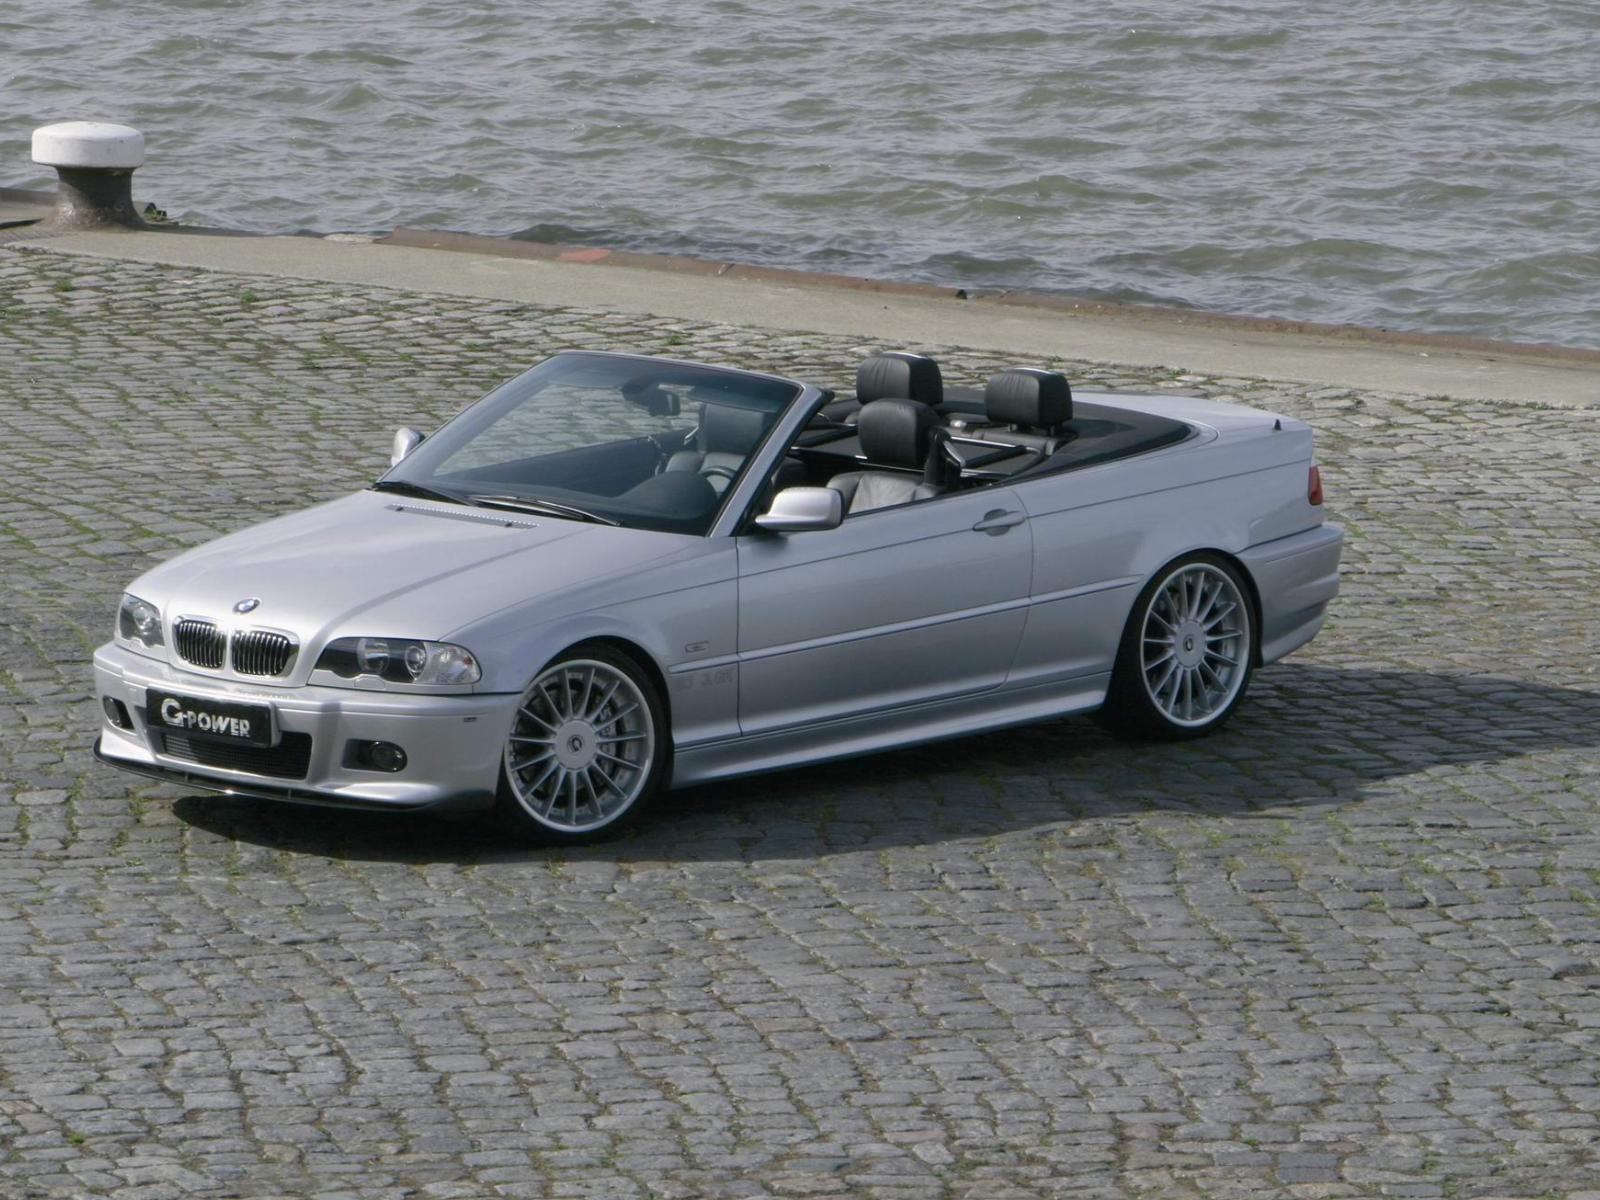 g power bmw 3 series cabrio e46 photos photogallery with 10 pics cars pictures. Black Bedroom Furniture Sets. Home Design Ideas